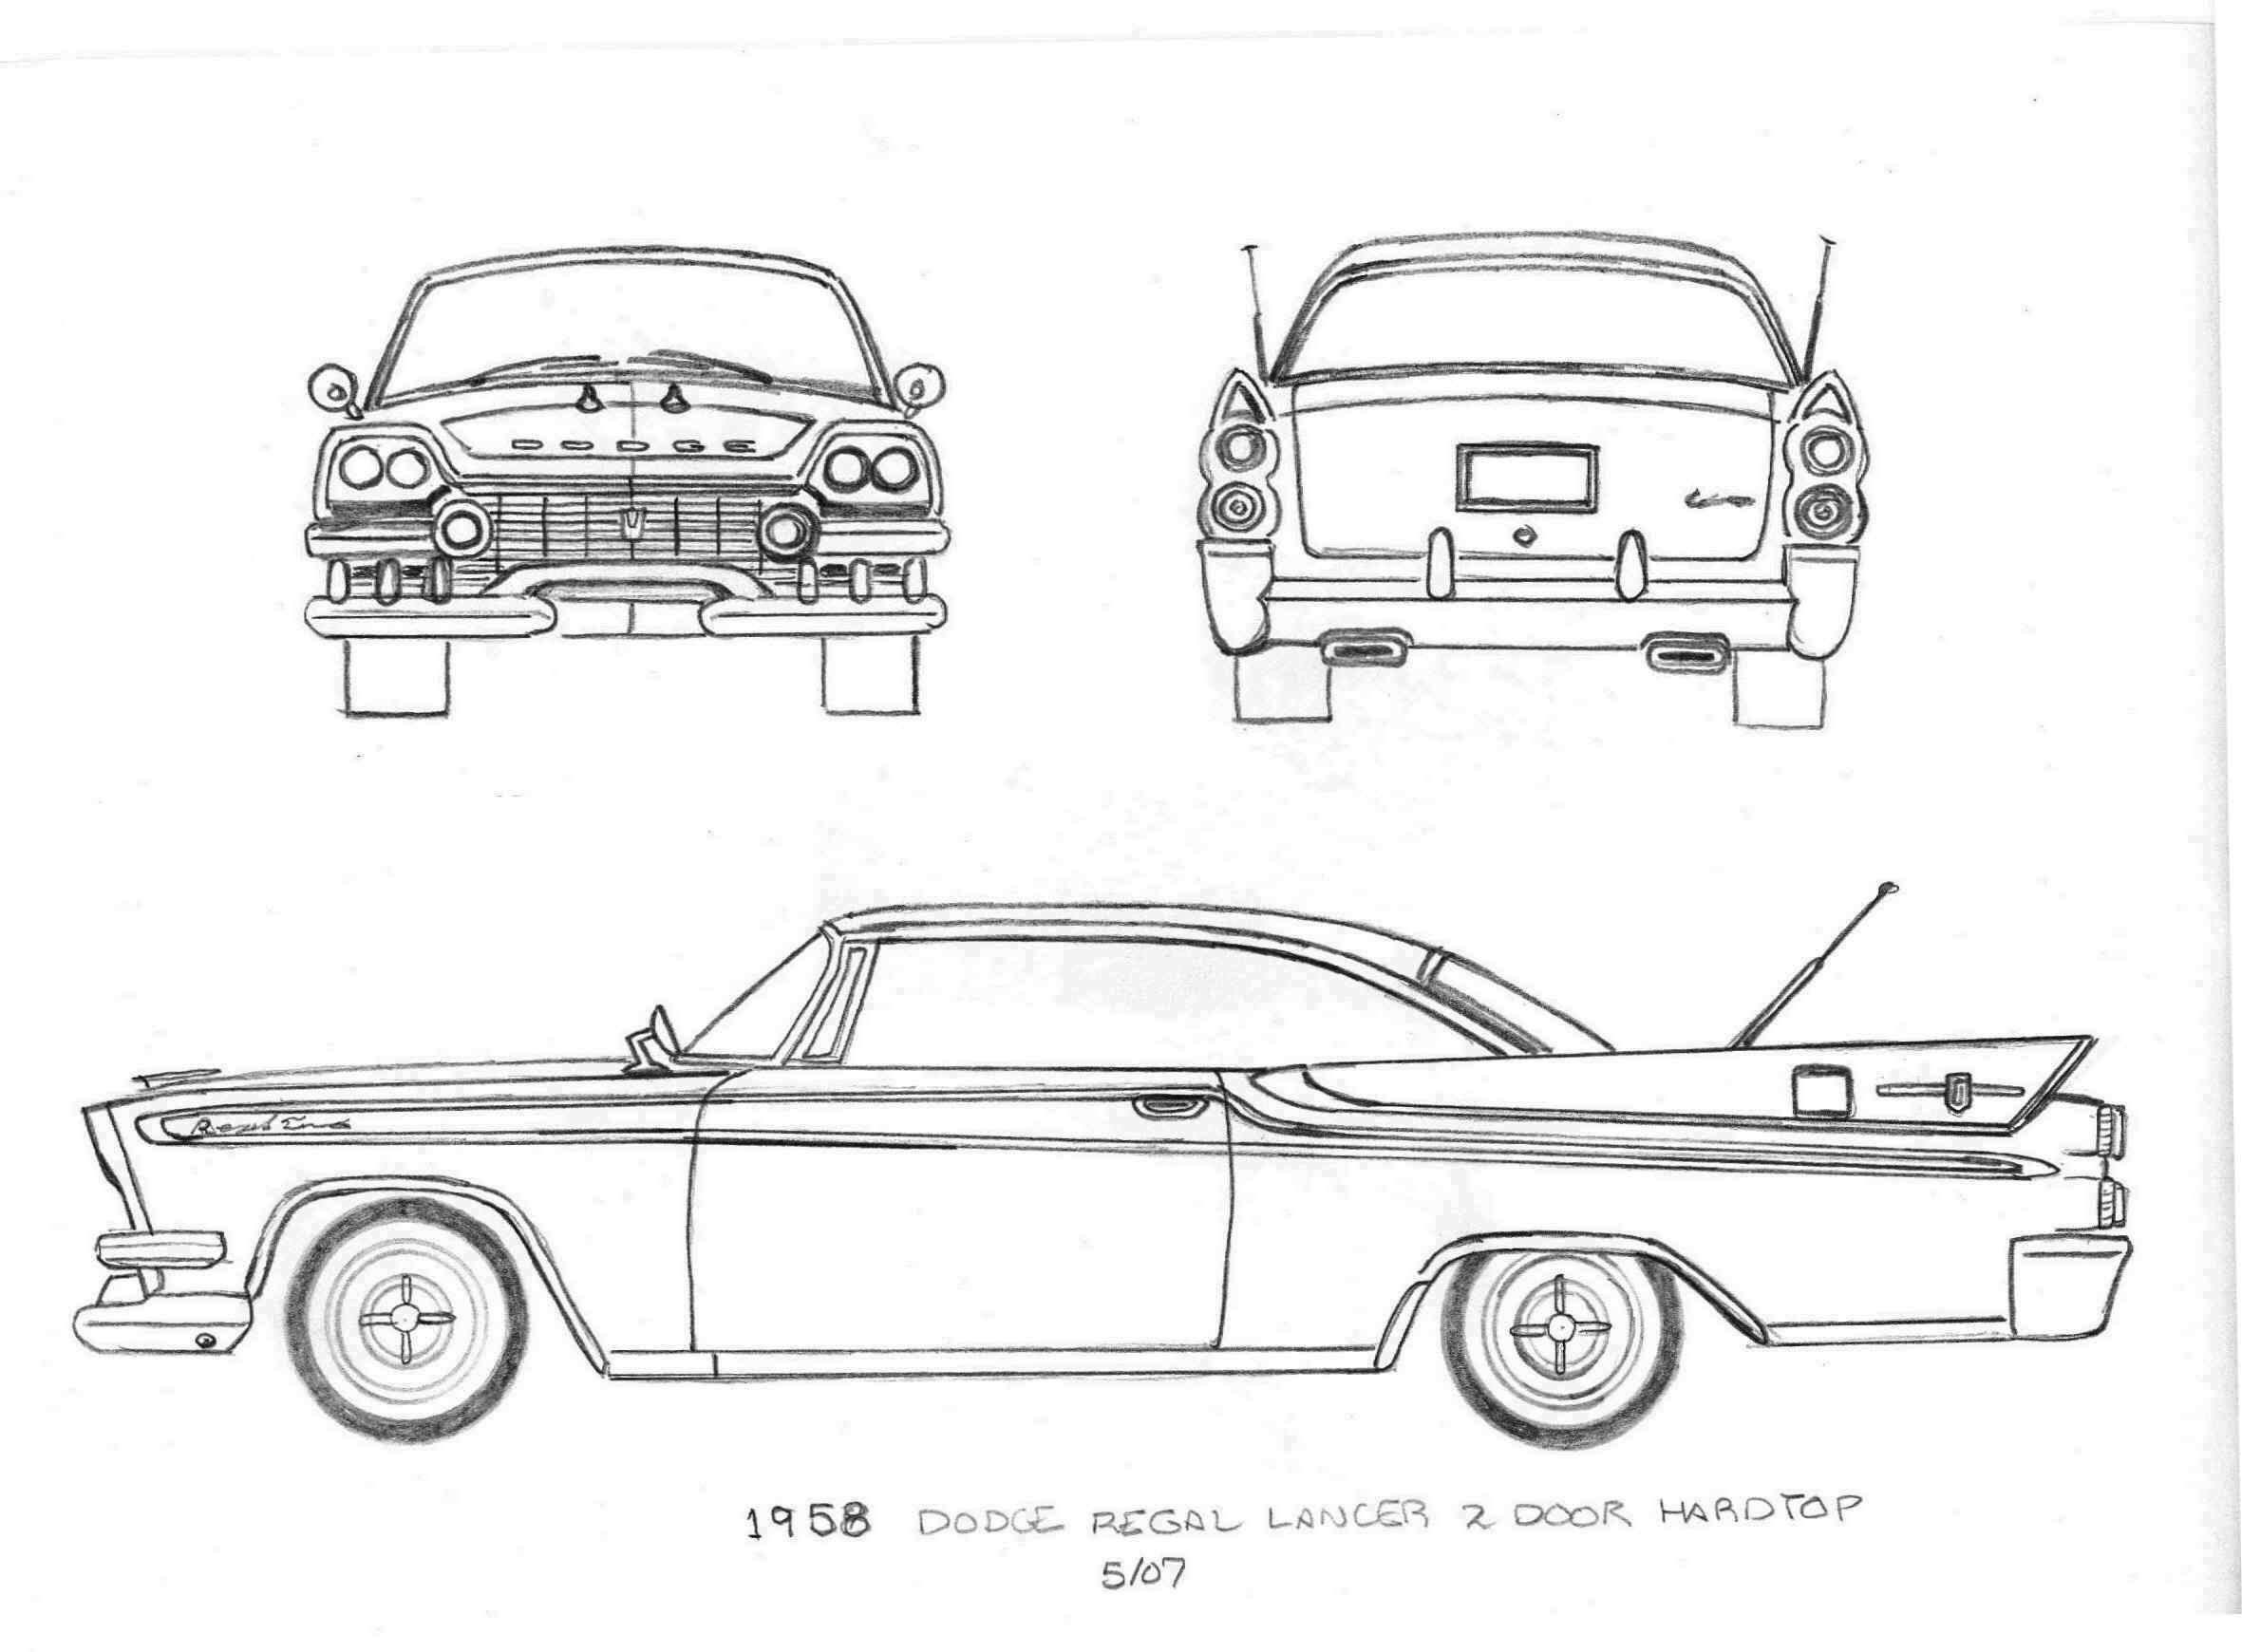 958 Dodge Regal Lancer (Copper/Black) Original Patten drawlings | My ...